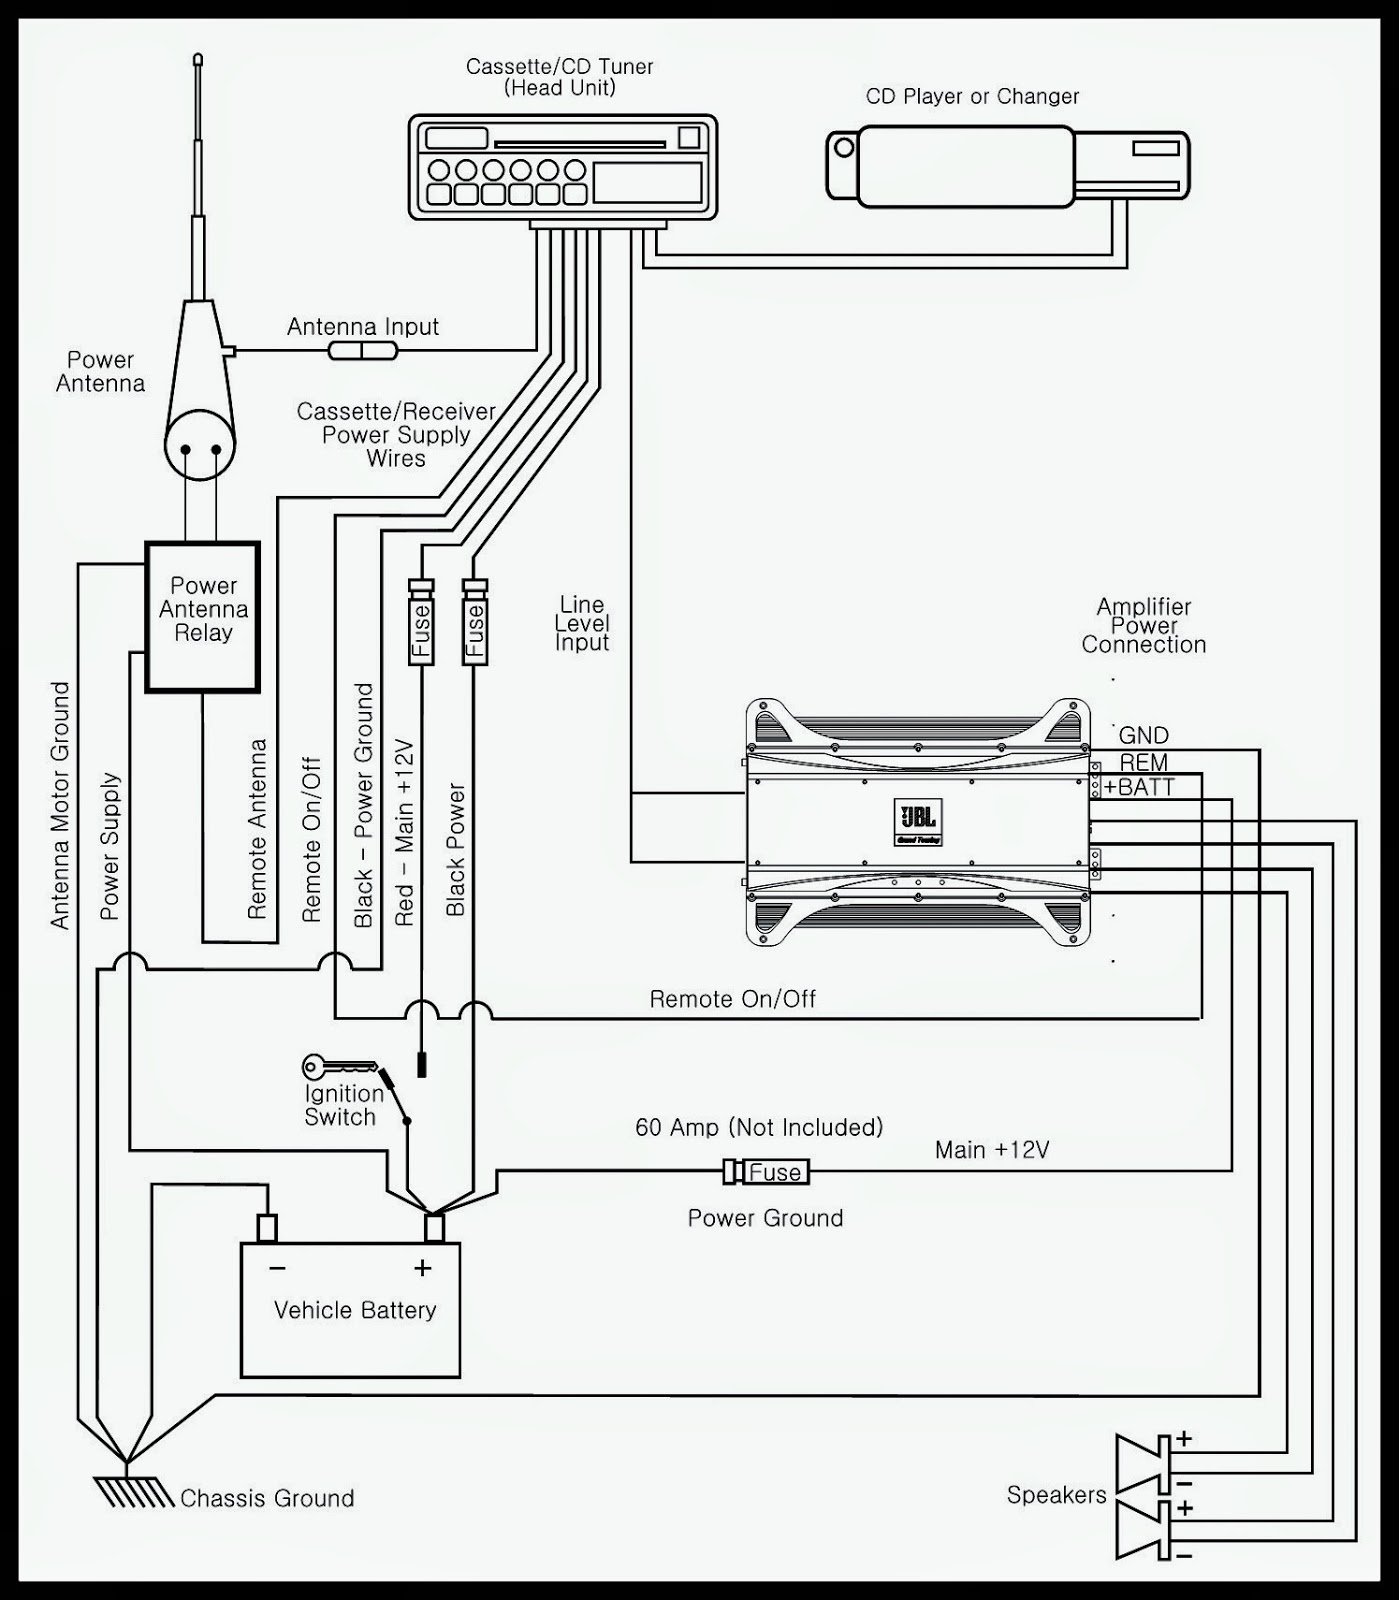 jbl car audio gto 75 2 wiring diagram installation circuit diagram installation circuit diagram 2 channel power amplifier [ 1399 x 1600 Pixel ]